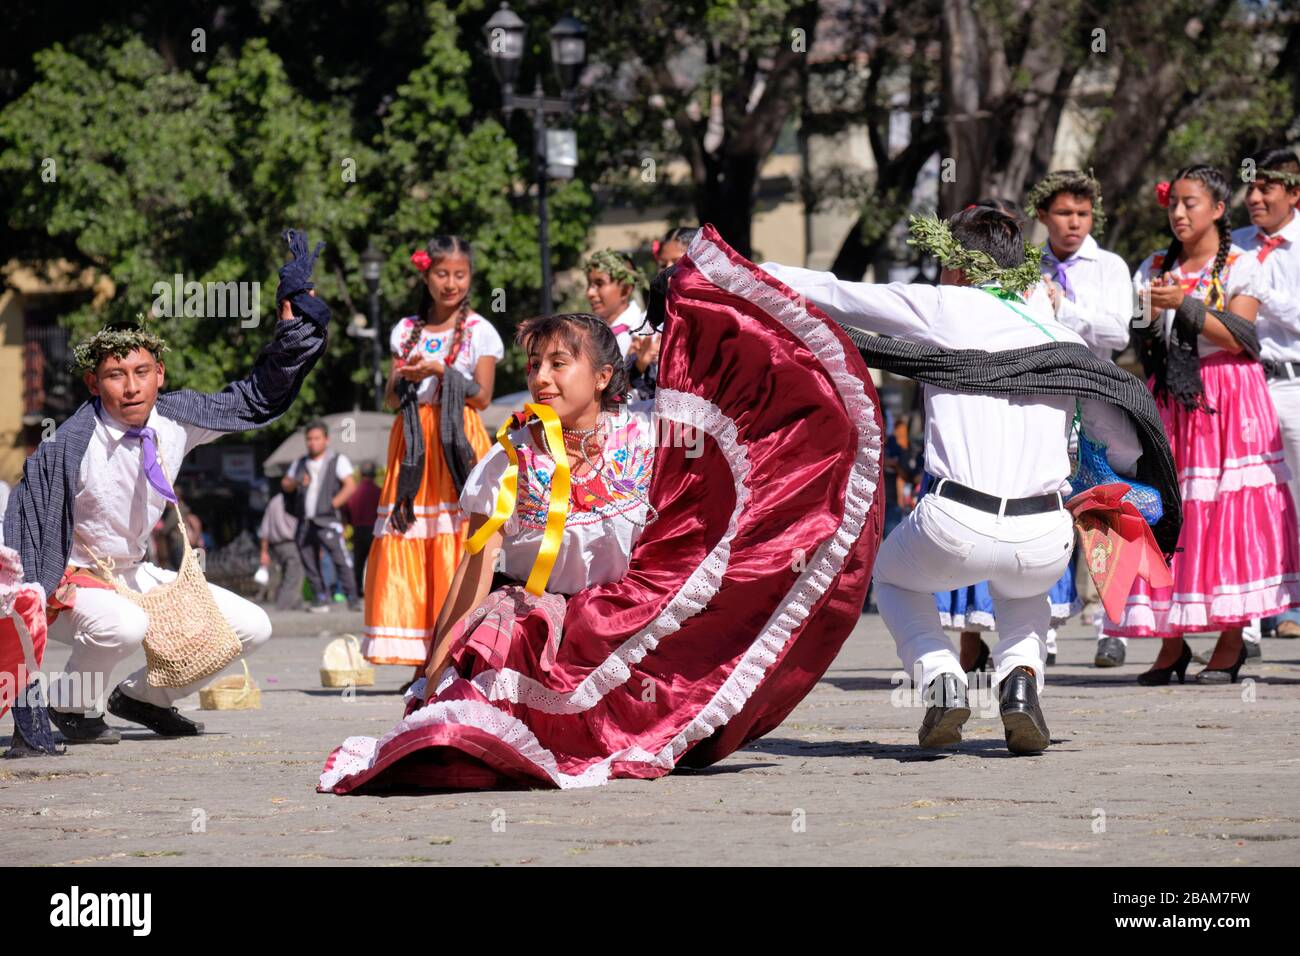 young-mexican-couple-folkloric-dancers-performing-traditional-dance-in-movement-in-crouched-position-2BAM7FW.jpg